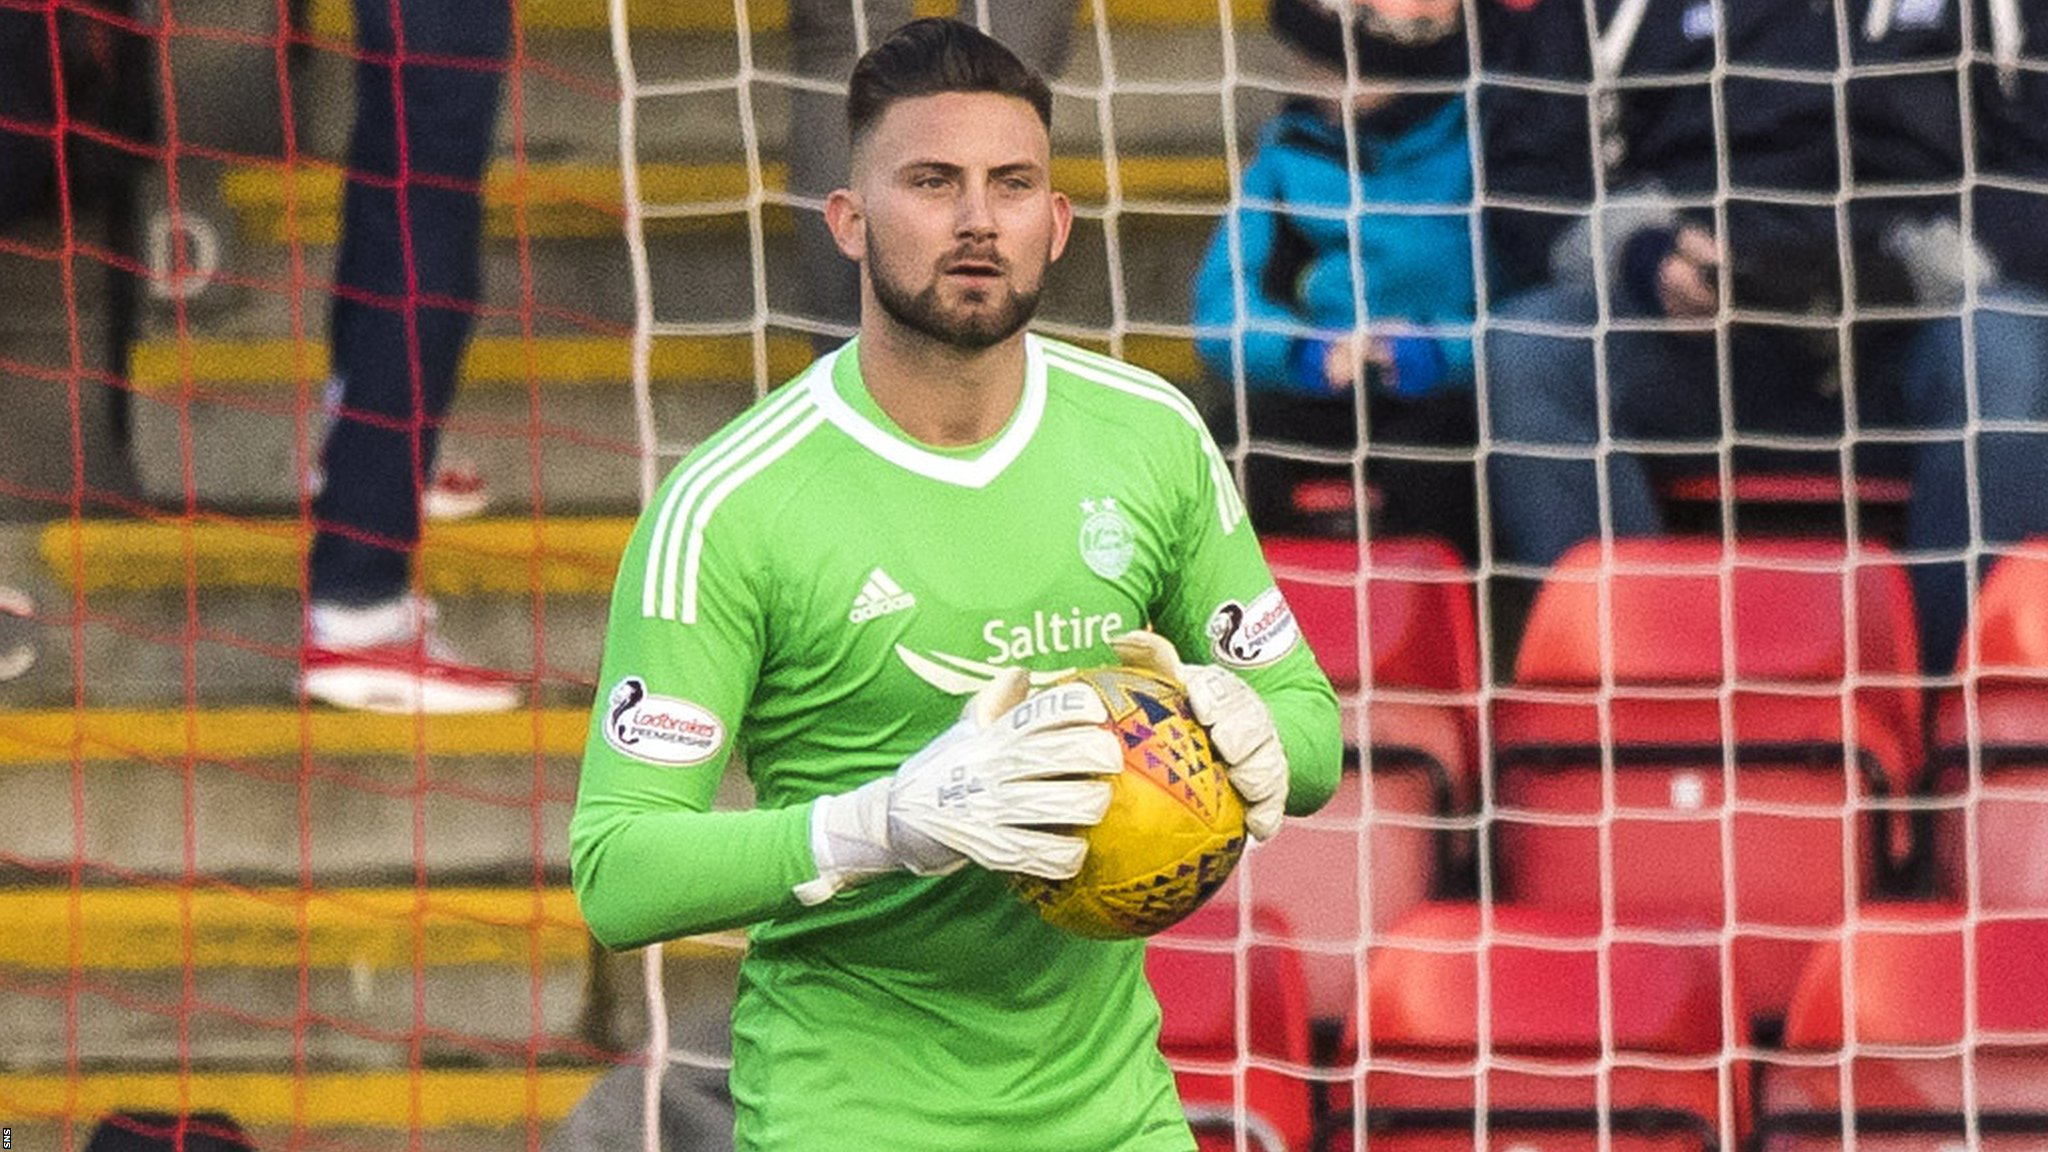 Aberdeen: Goalkeeper Danny Rogers signs two-year contract extension